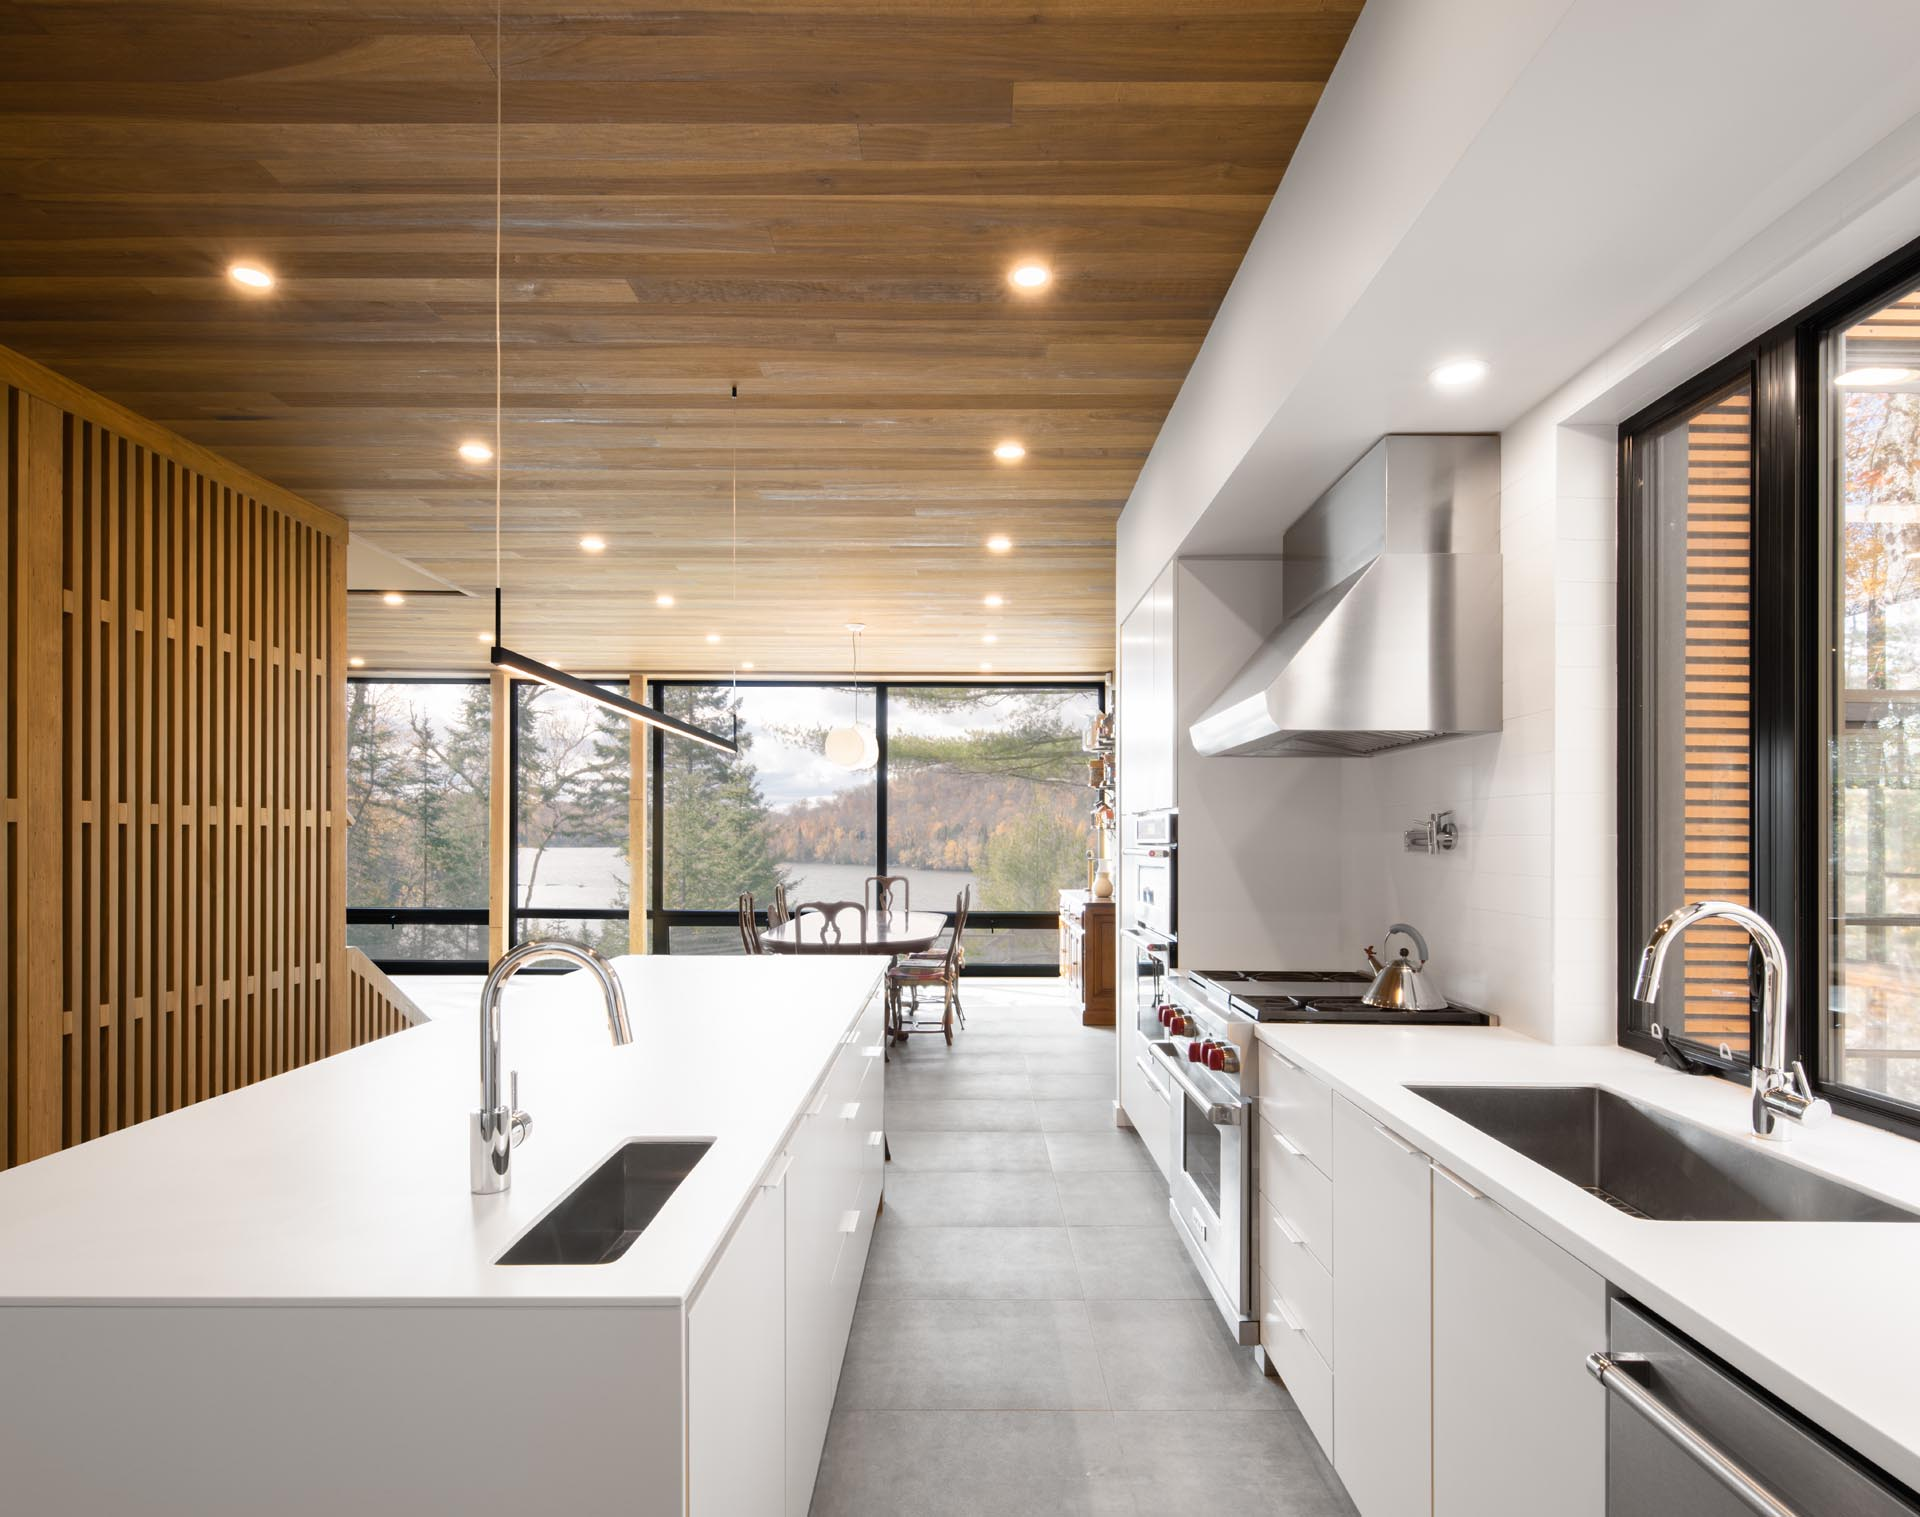 A large white kitchen with an island and an open plan dining area both enjoy views of the lake through floor-to-ceiling windows.